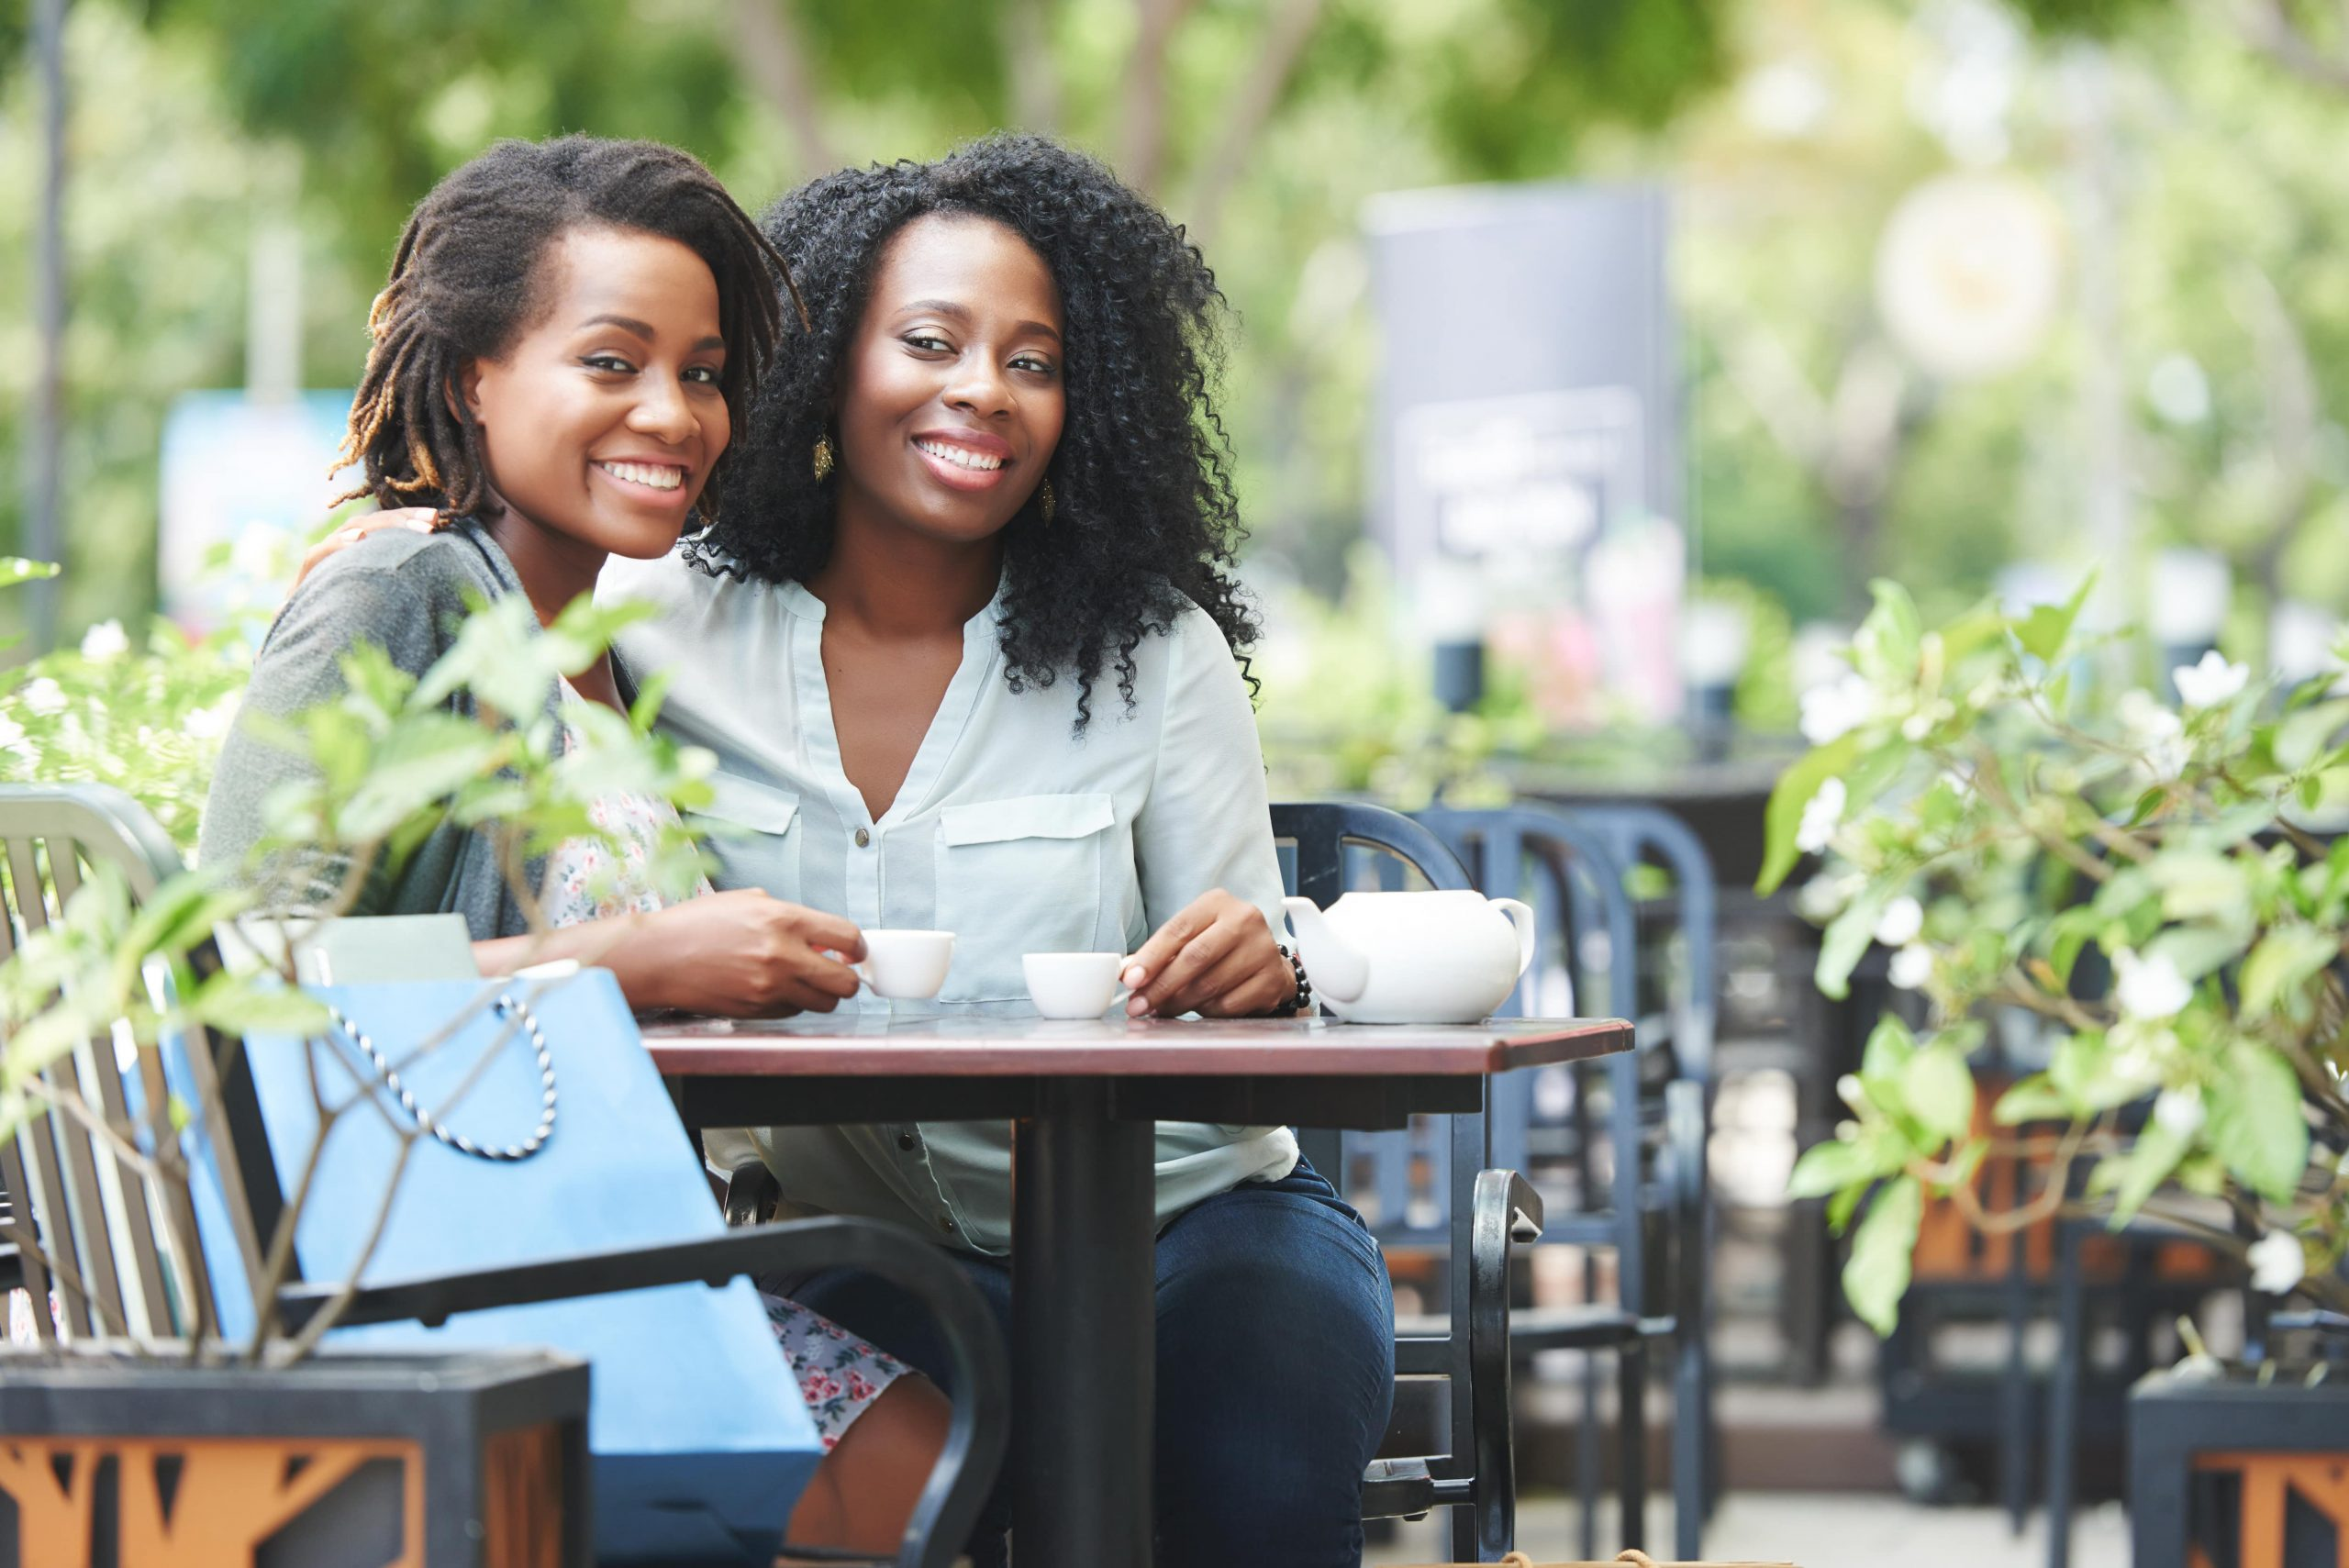 African American women more likely to experience fibroids